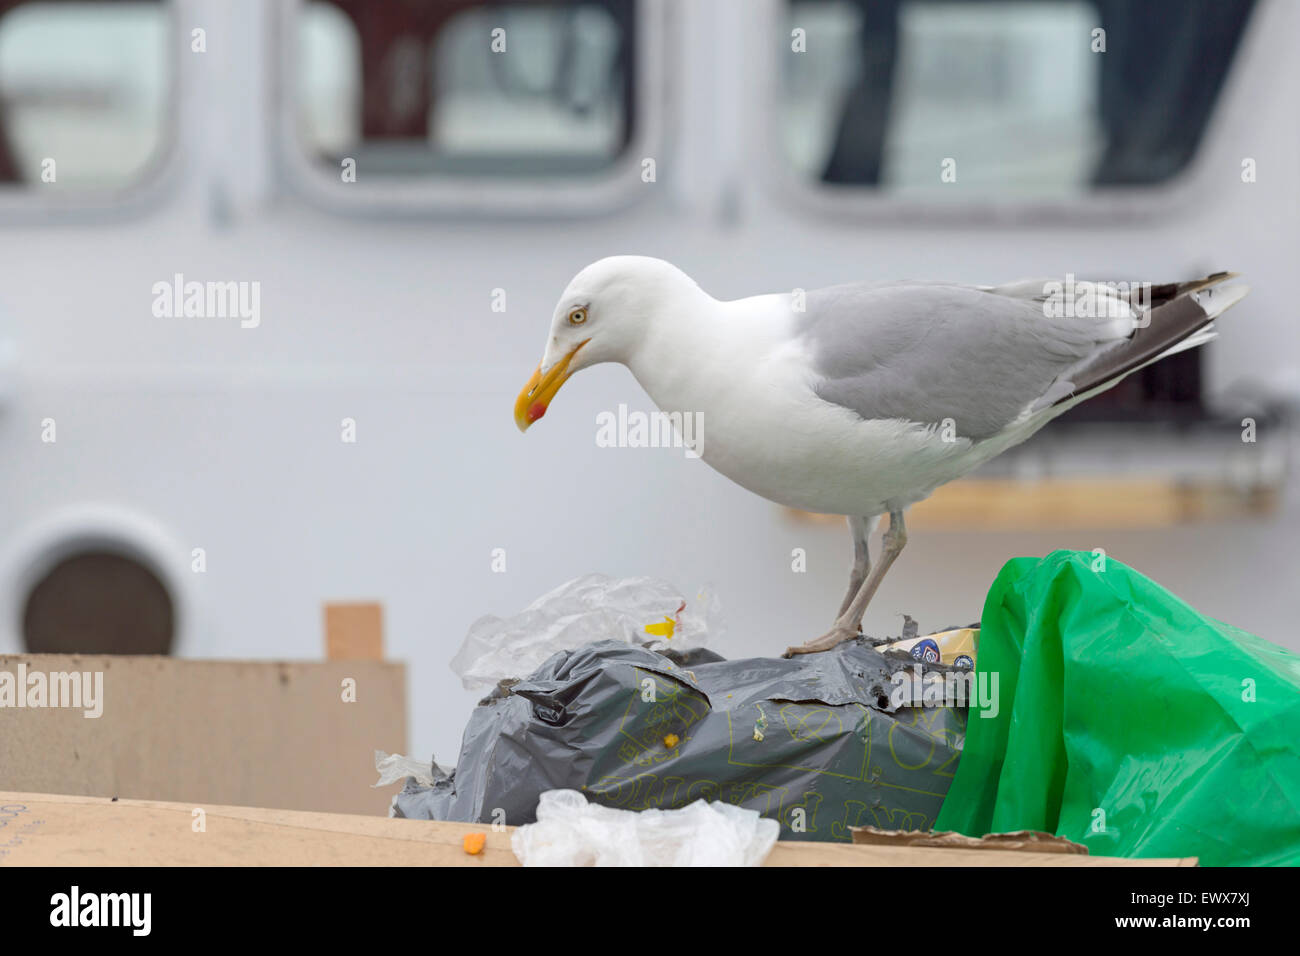 Lesser black-backed gull eating from a dustbin bag at  the harbor of IJmuiden, North Holland, The Netherlands. Stock Photo